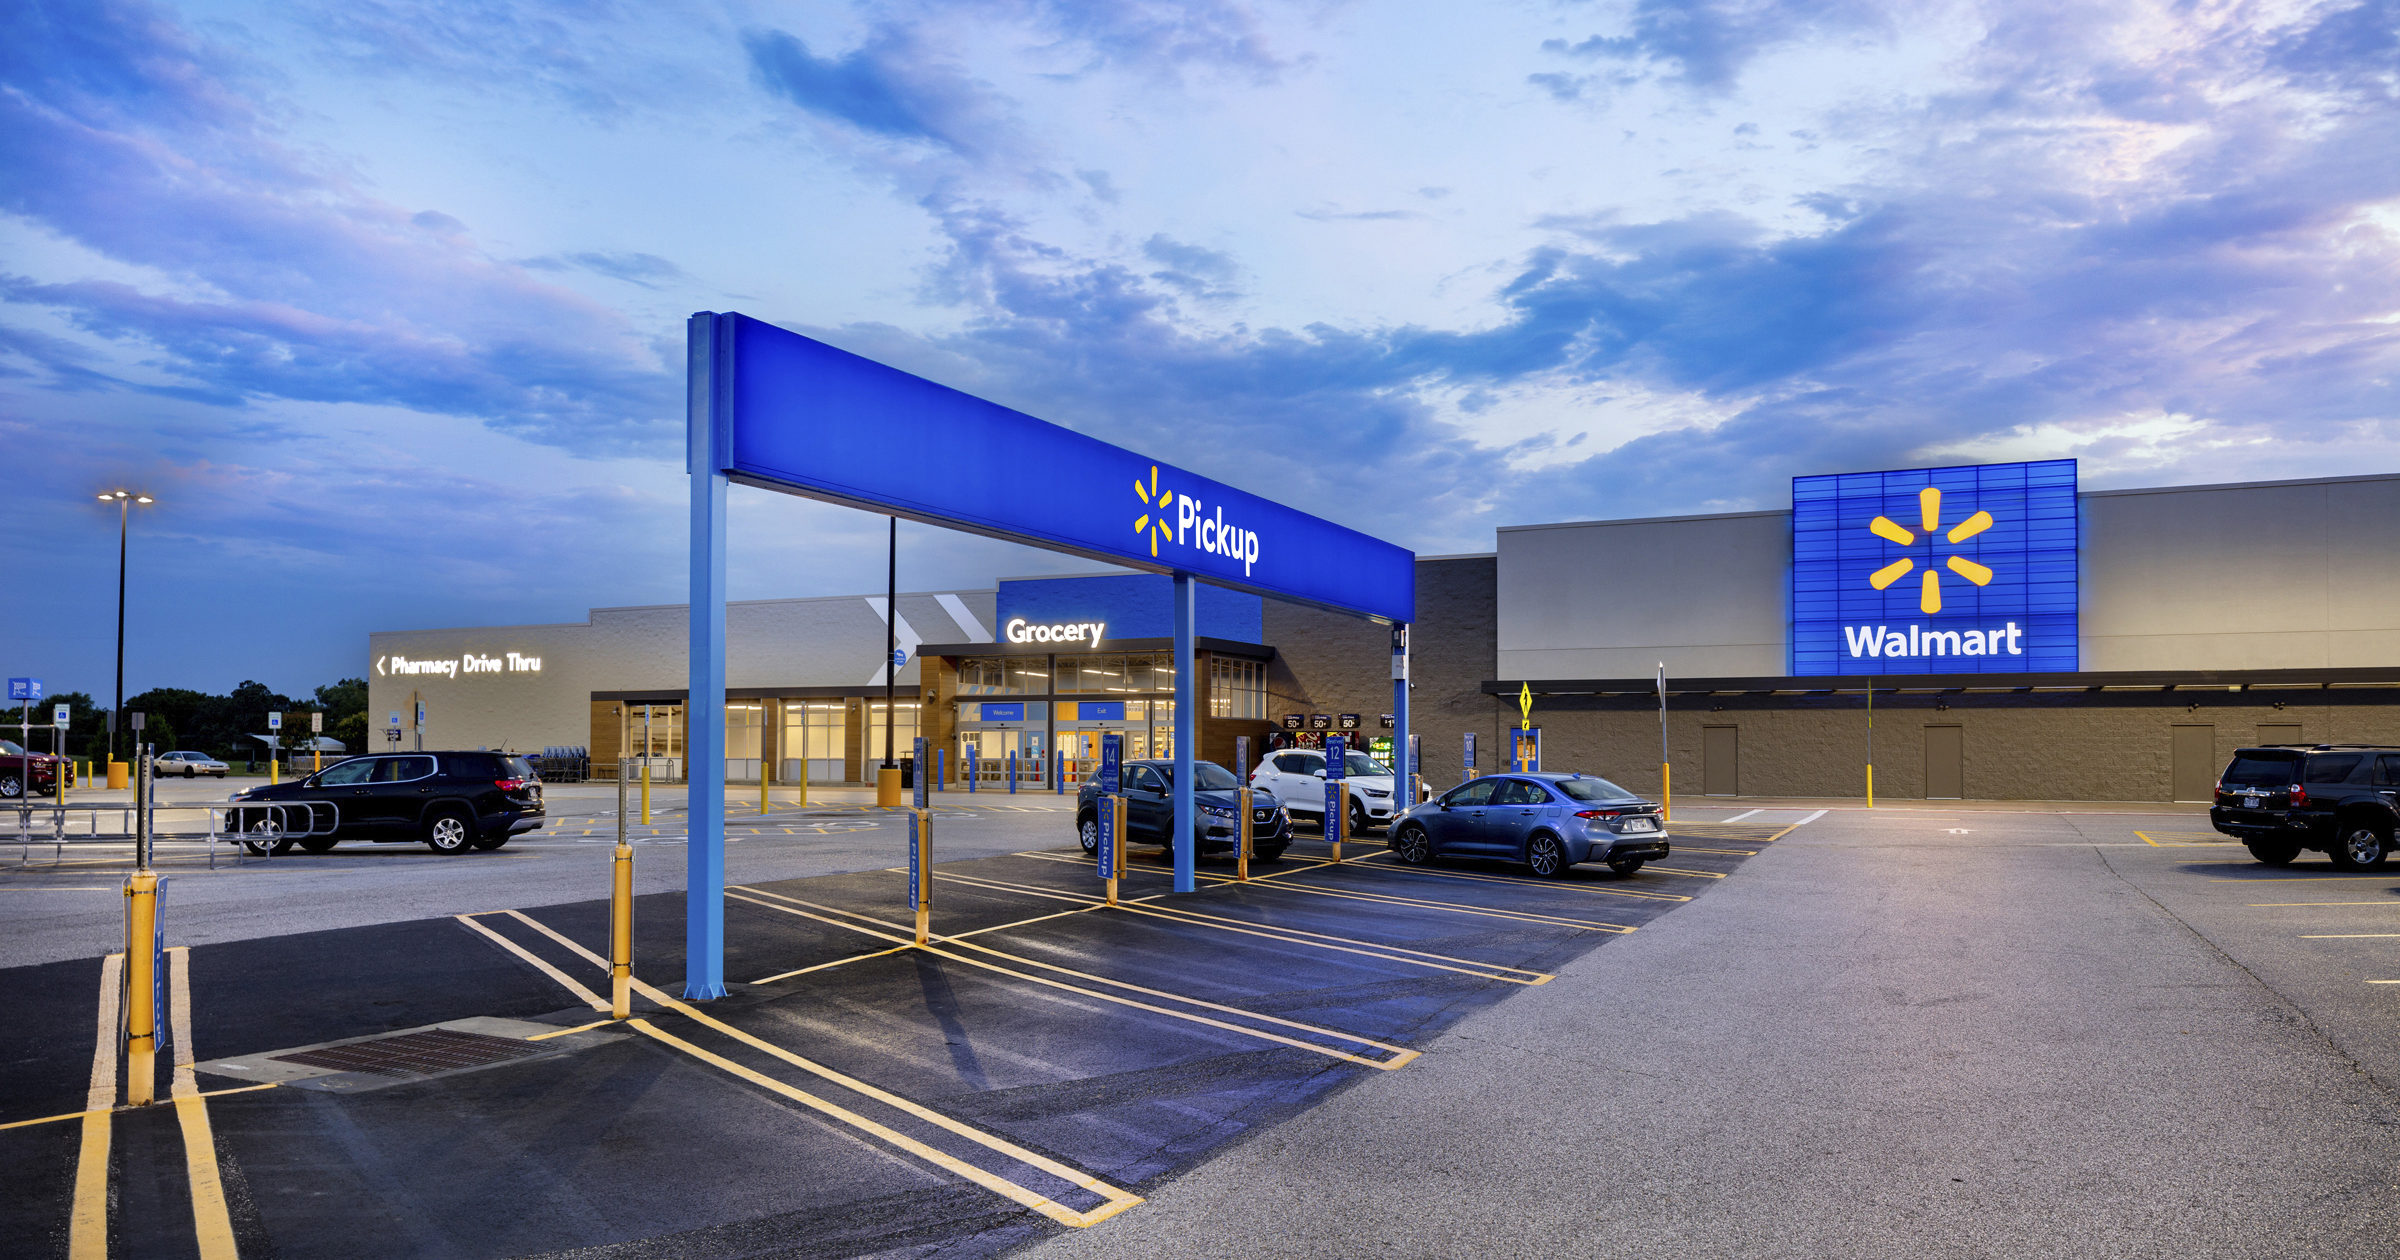 This July 2020 photo provided by Walmart shows the bright signage and Walmart logos from the parking lot outside the Walmart Supercenter in Springdale, Arkansas. Walmart is getting inspiration from the airport terminal as it revamps the layout and signage of its stores to speed up shopping and better cater to smartphone-armed customers.